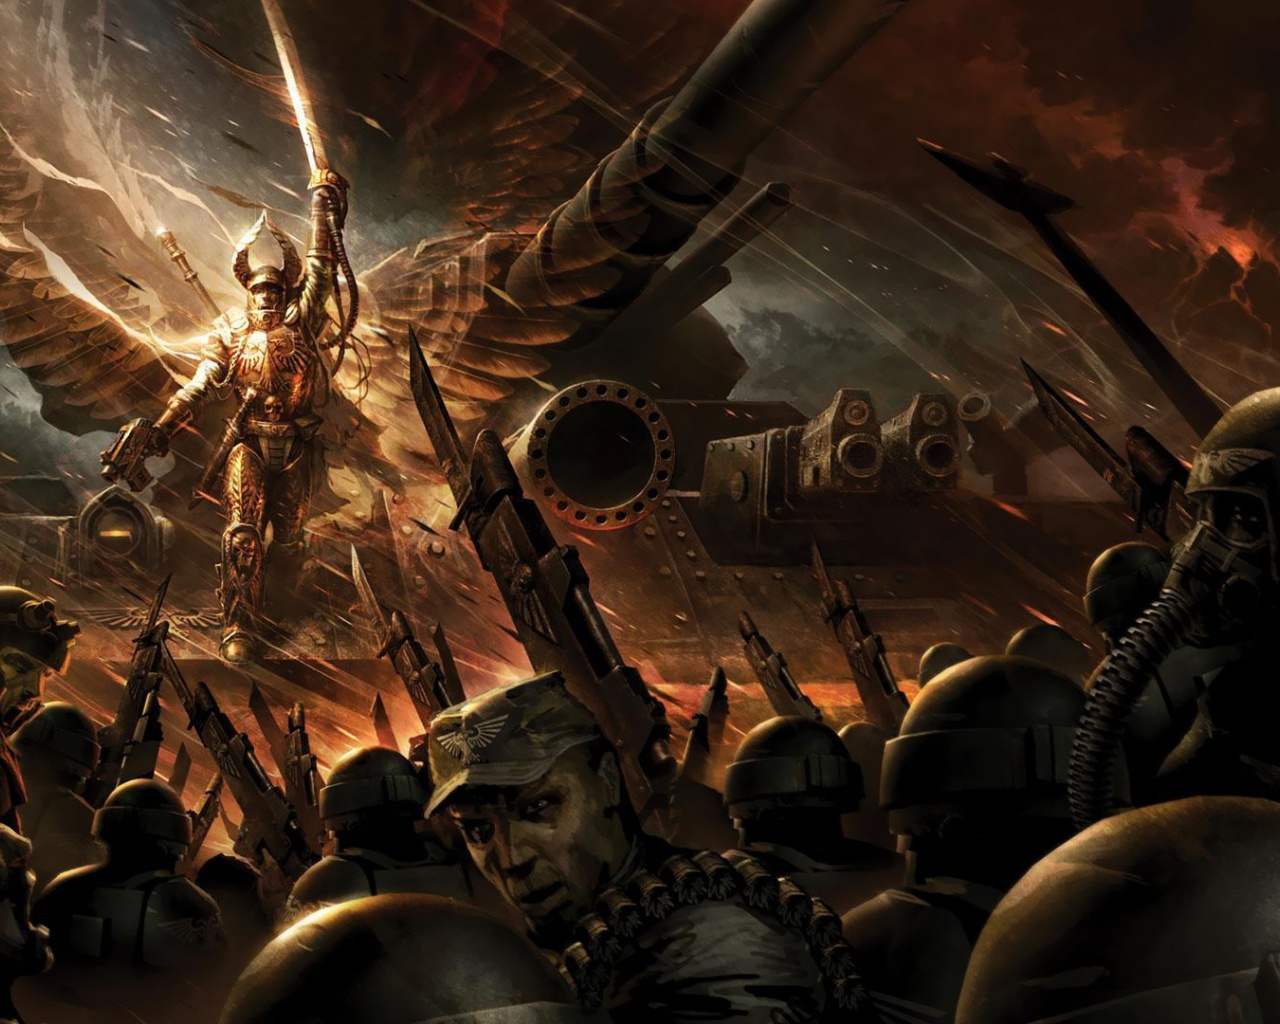 1280x1024 Warhammer, game, games